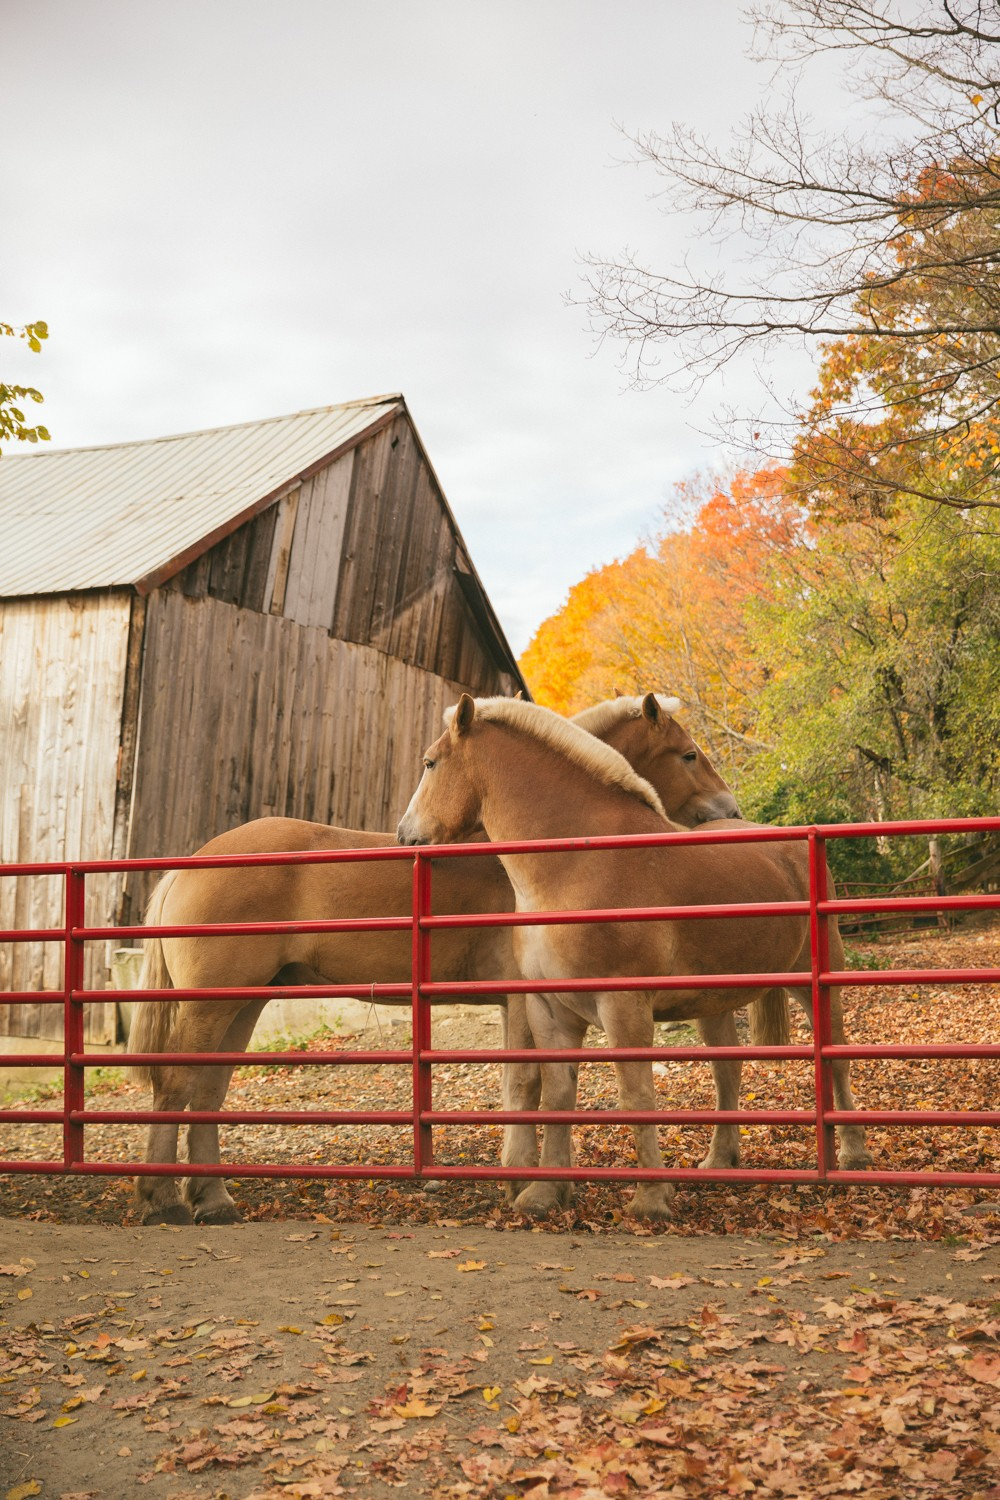 Horses in the autumn leave in Vermont